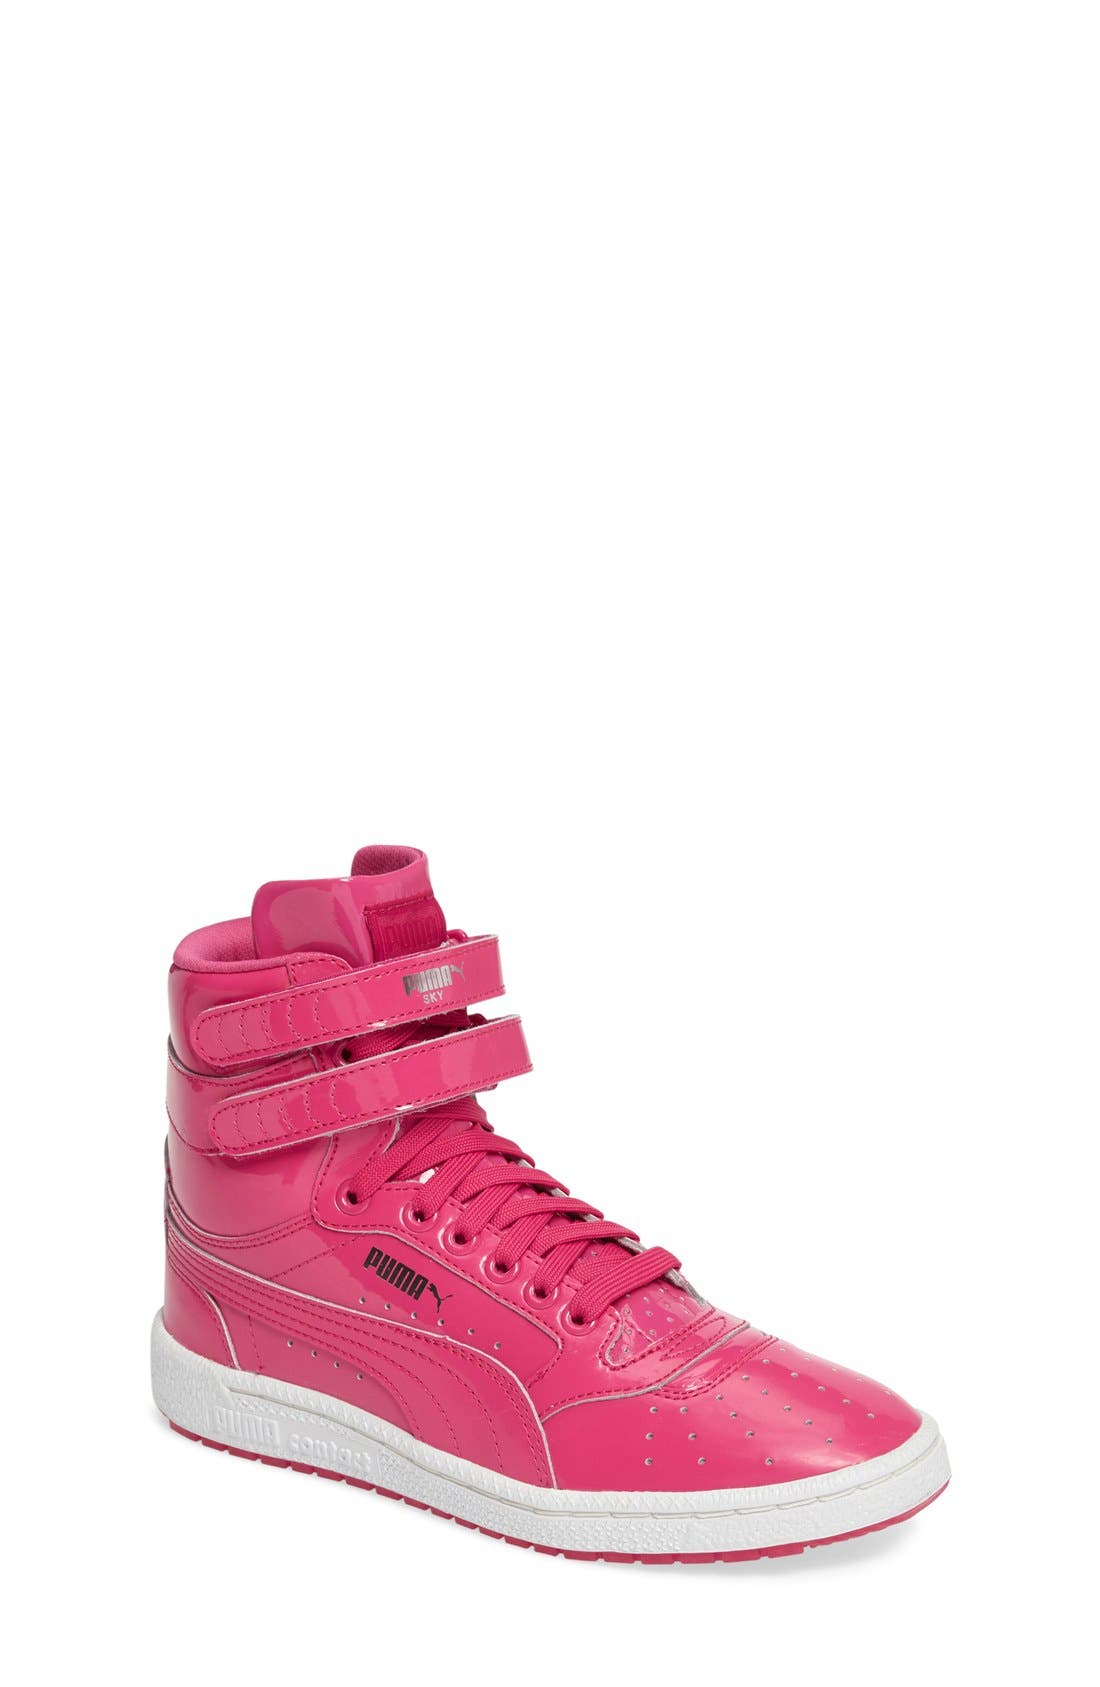 PUMA Sky II Hi Patent High Top Sneaker